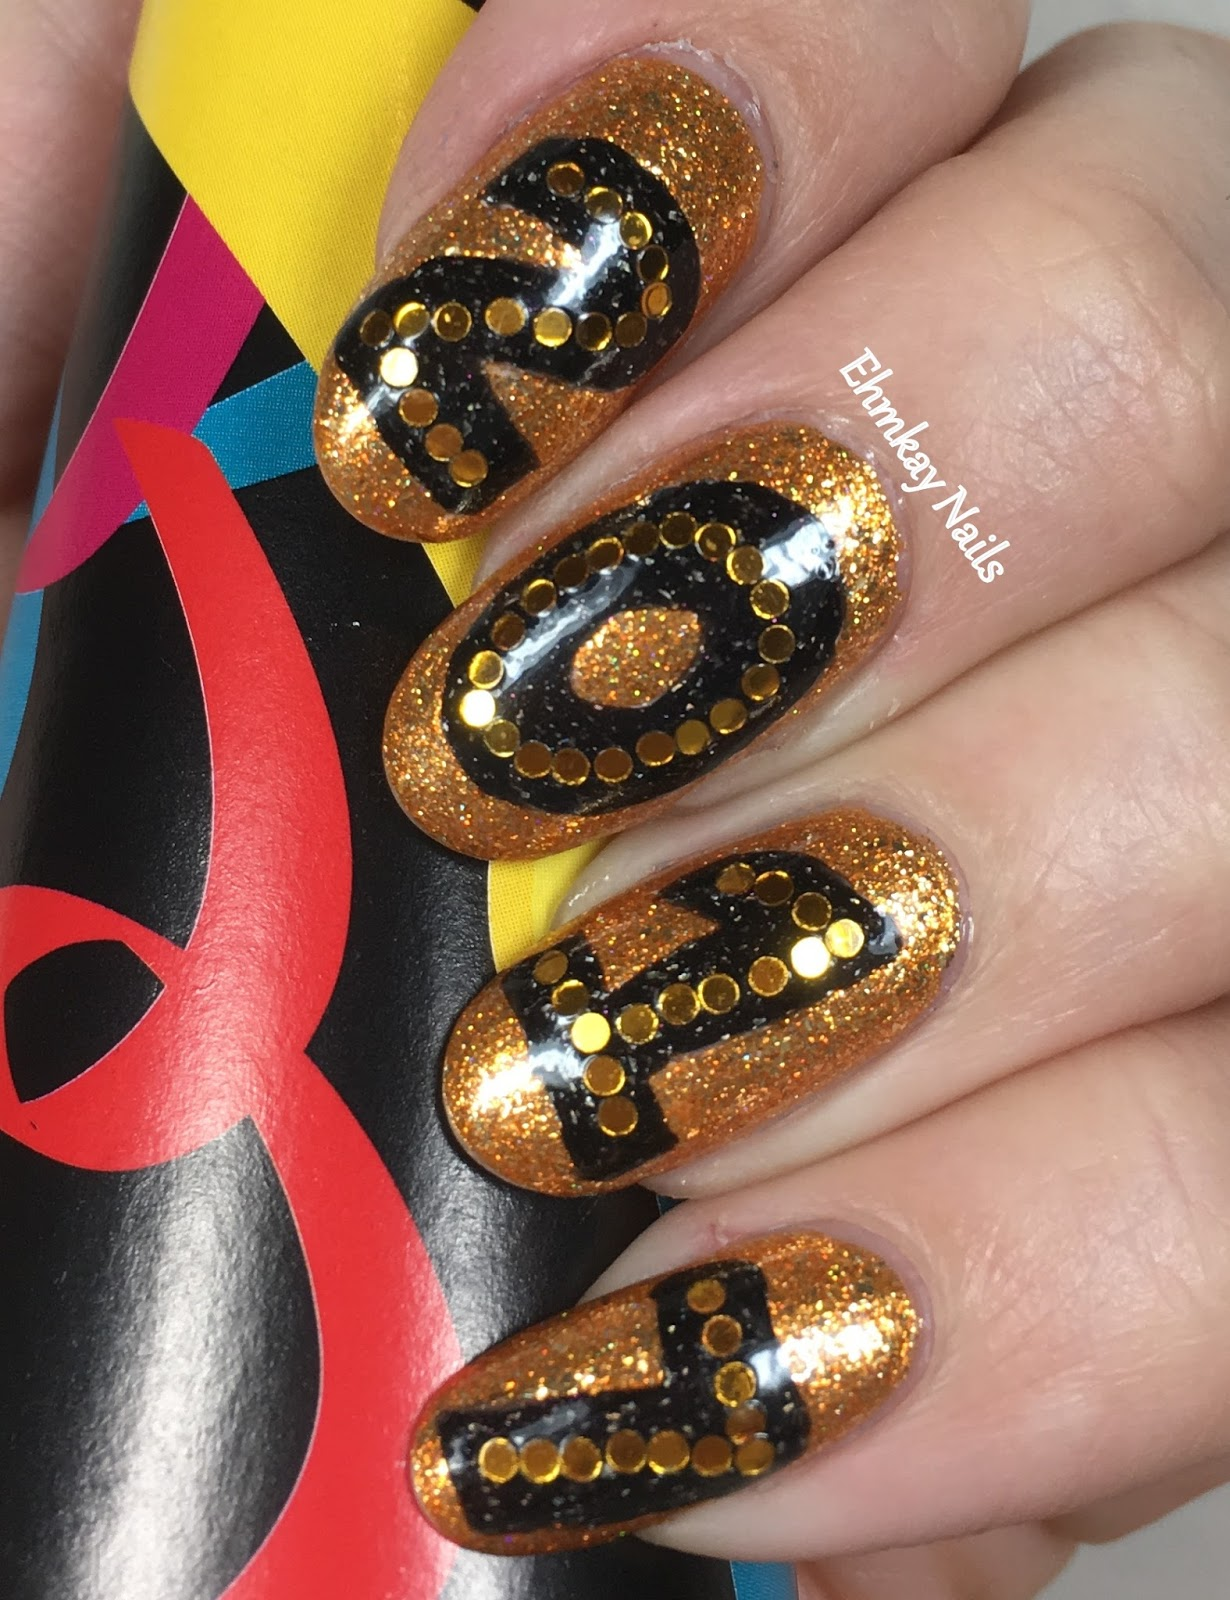 Ehmkay nails welcome to 2017 nail art welcome to 2017 nail art prinsesfo Images